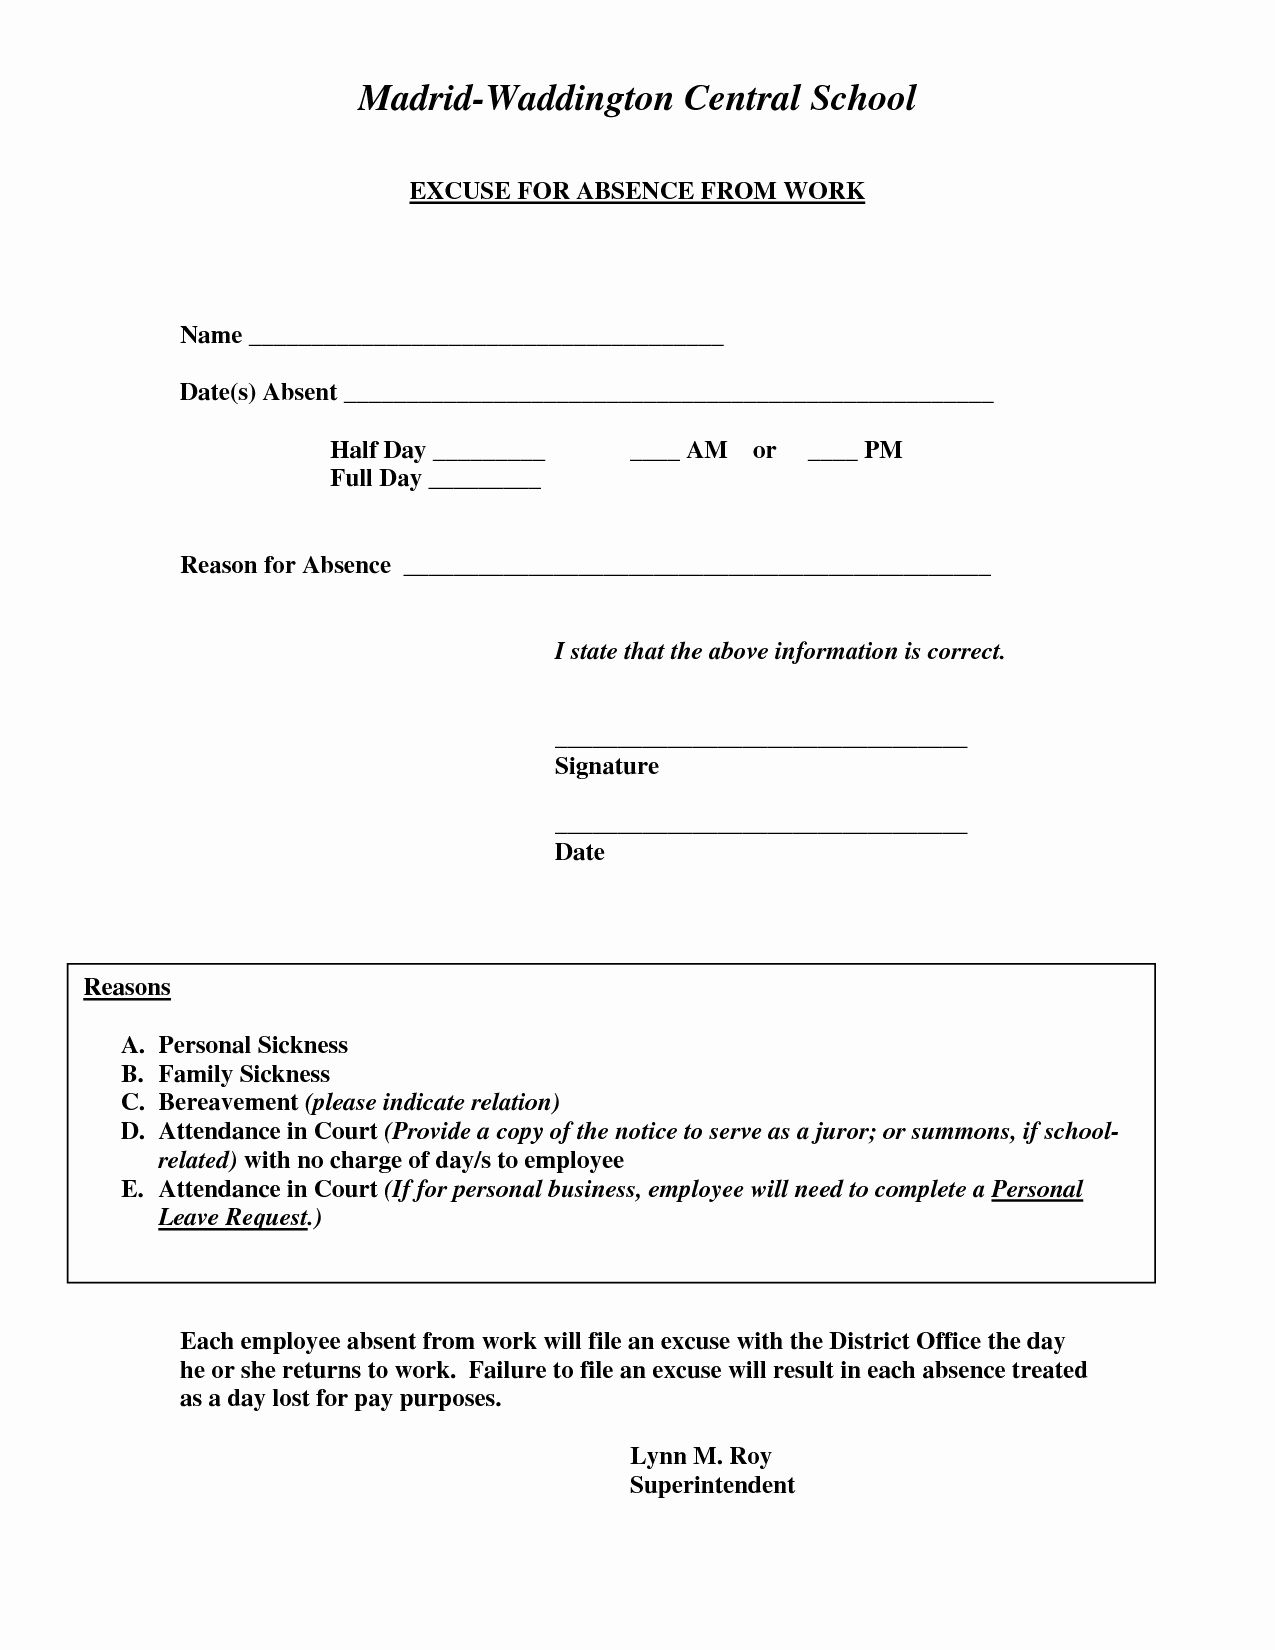 Free Fake Doctors Note Template New Doctors Excuse for Work Template